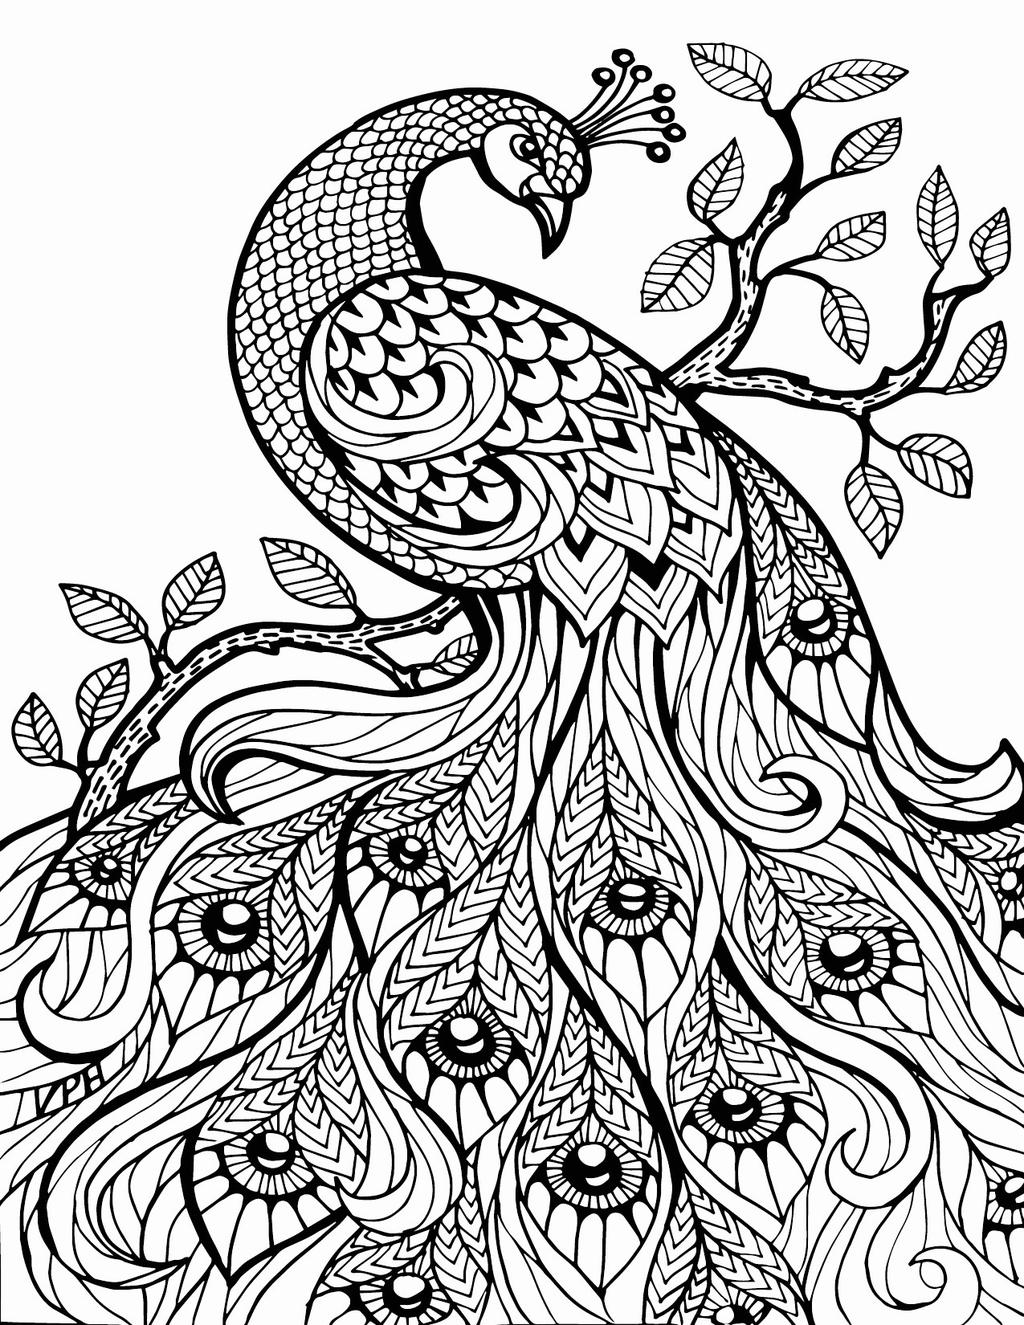 Free Peacock Aesthetic Coloring Pages printable